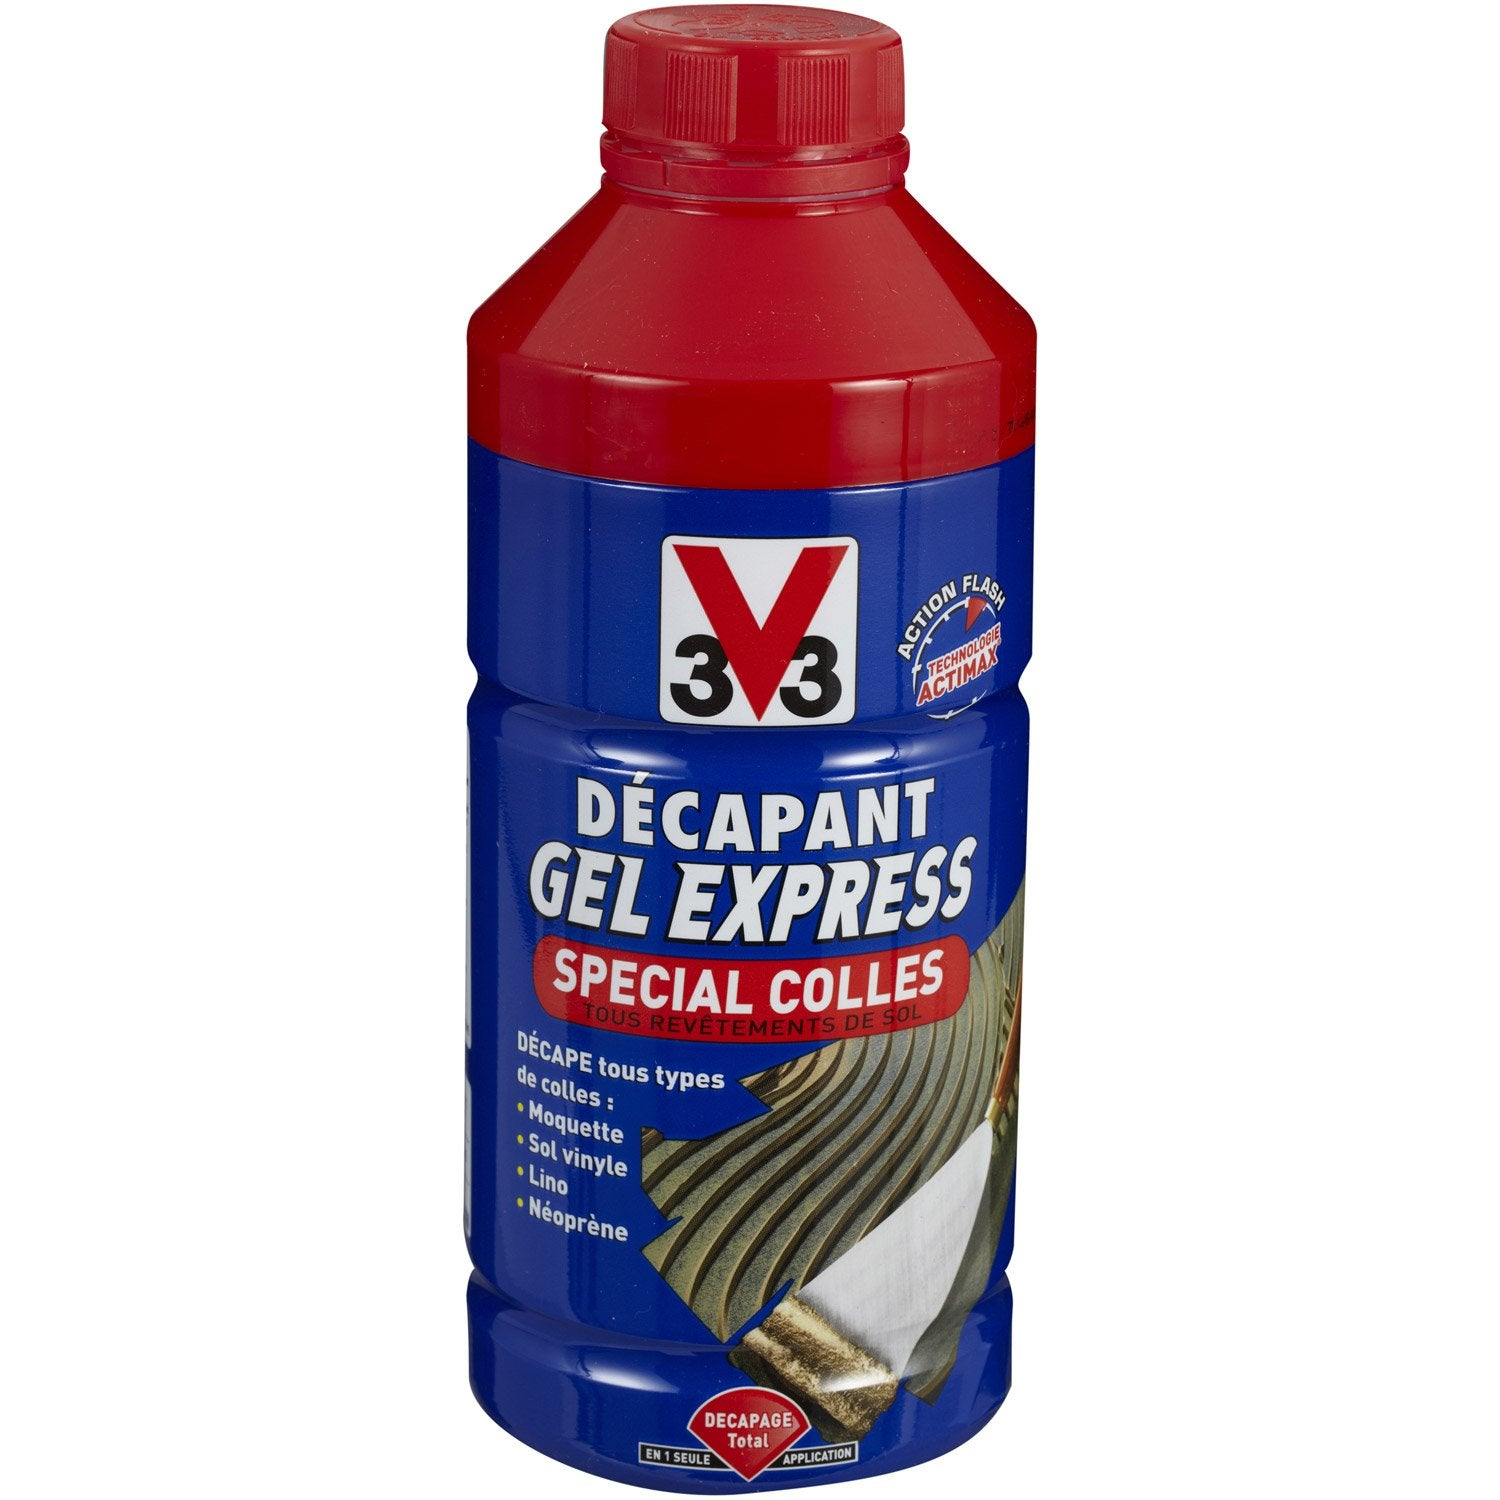 D capant colle v33 gel express 1 l leroy merlin for Decaper carrelage